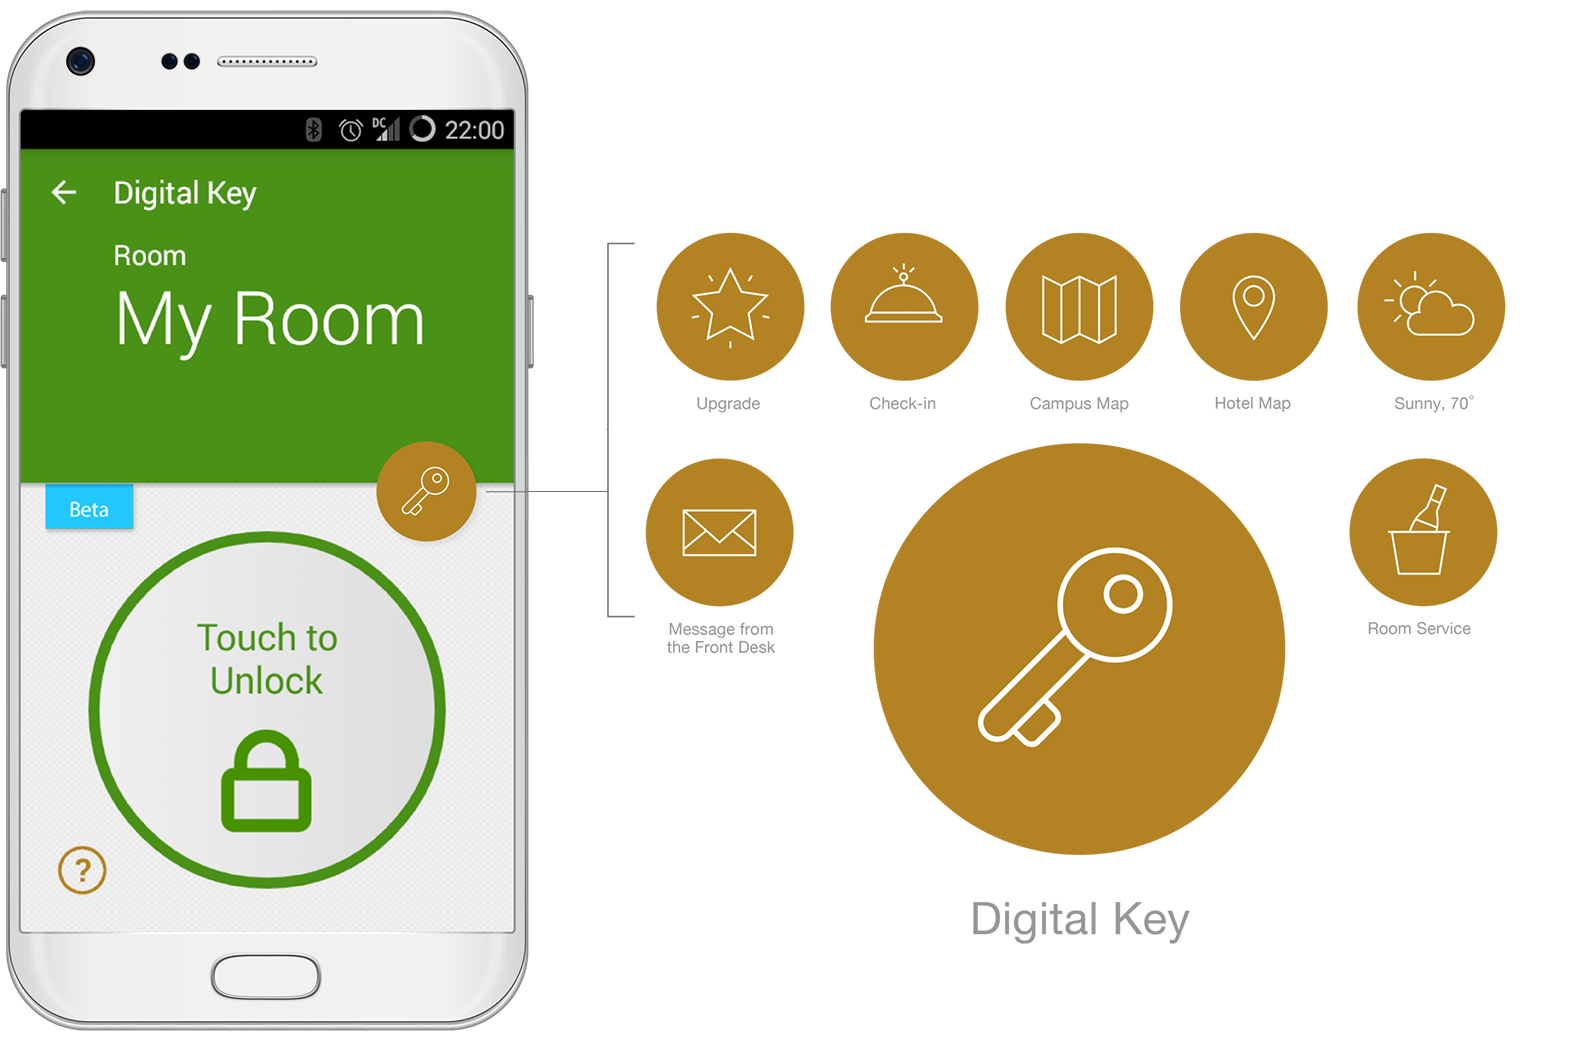 Android phone with circular key icon in gold with a diagram of the same key icon enlarged among other icons in the same graphic style